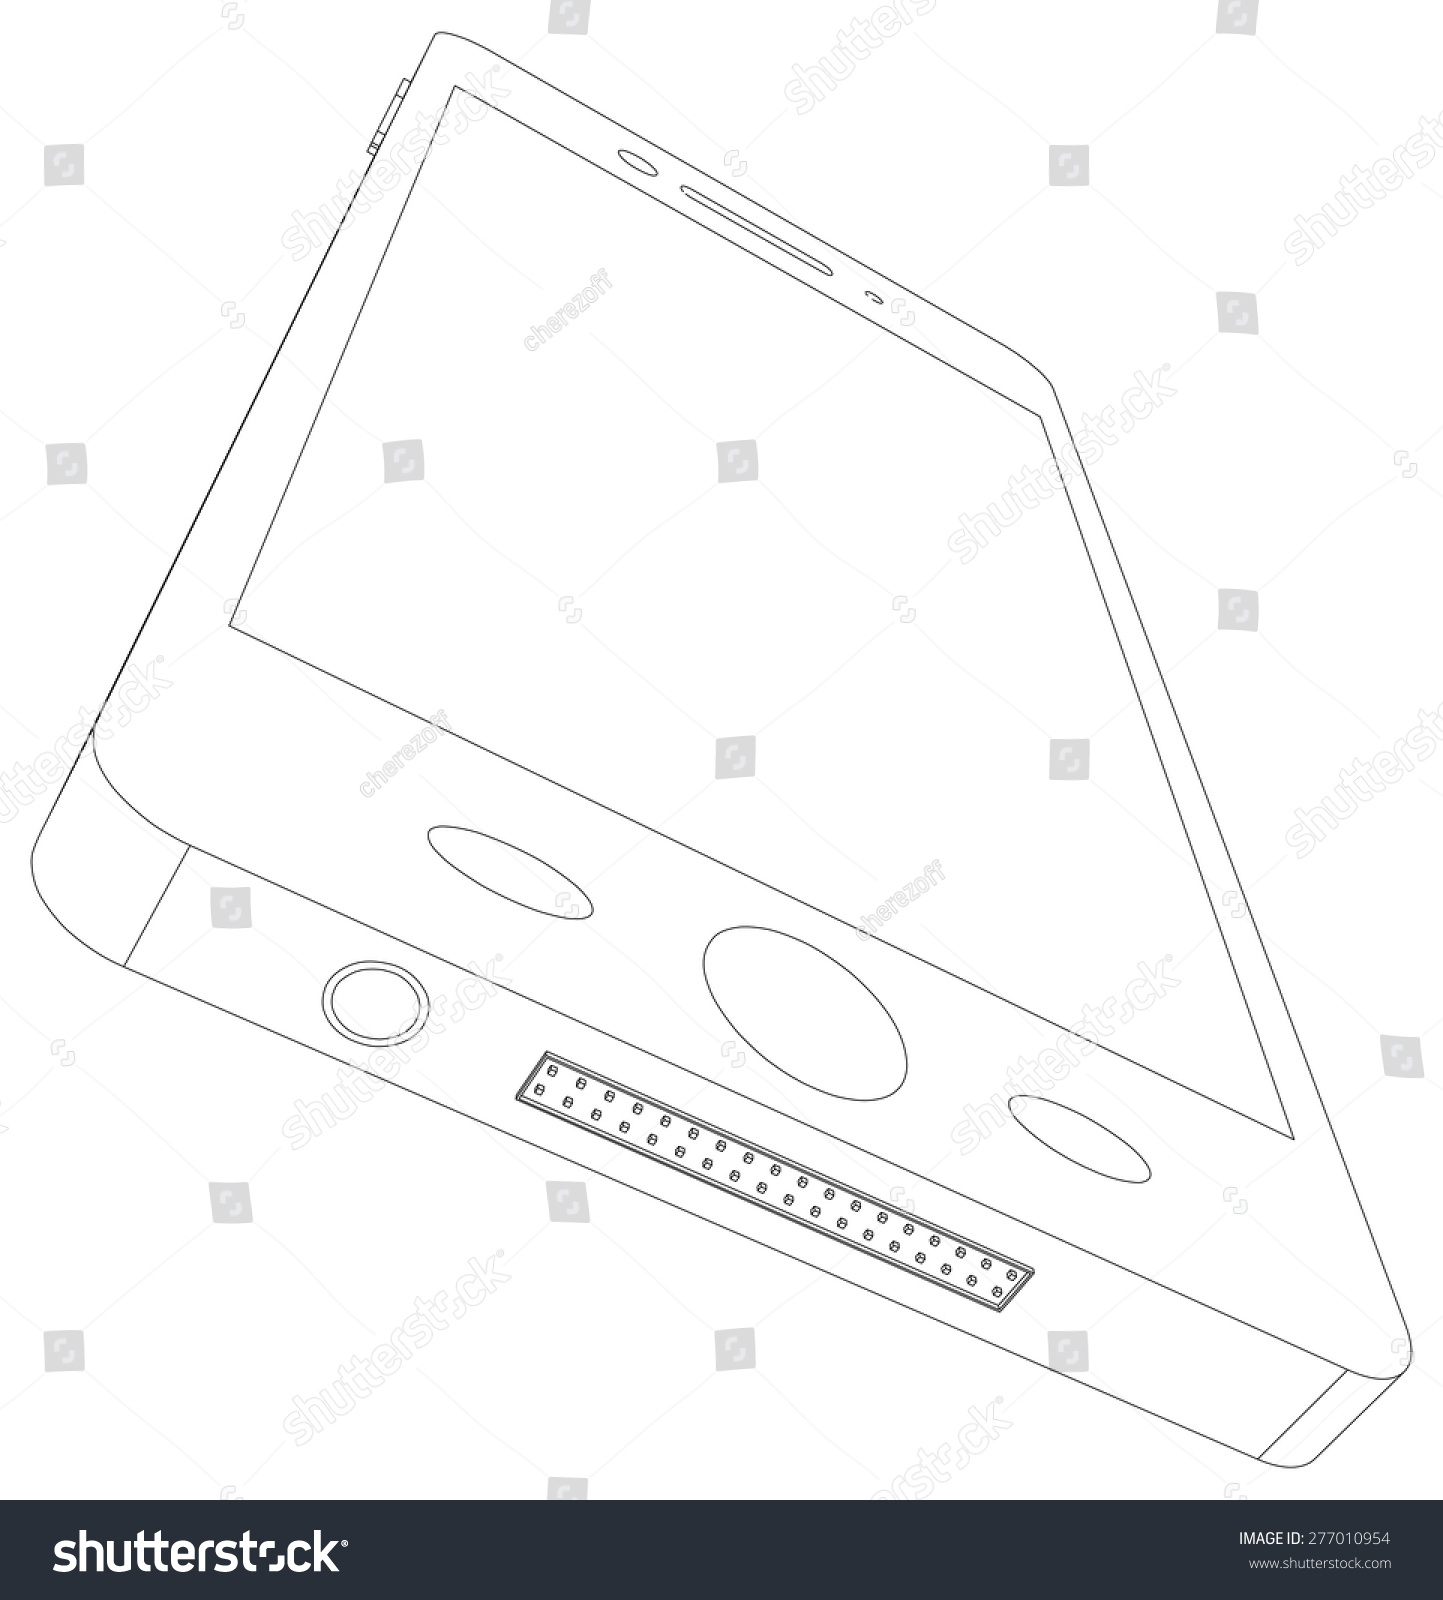 hight resolution of sketch of smart phone with usb socket on isolated white background bottom view